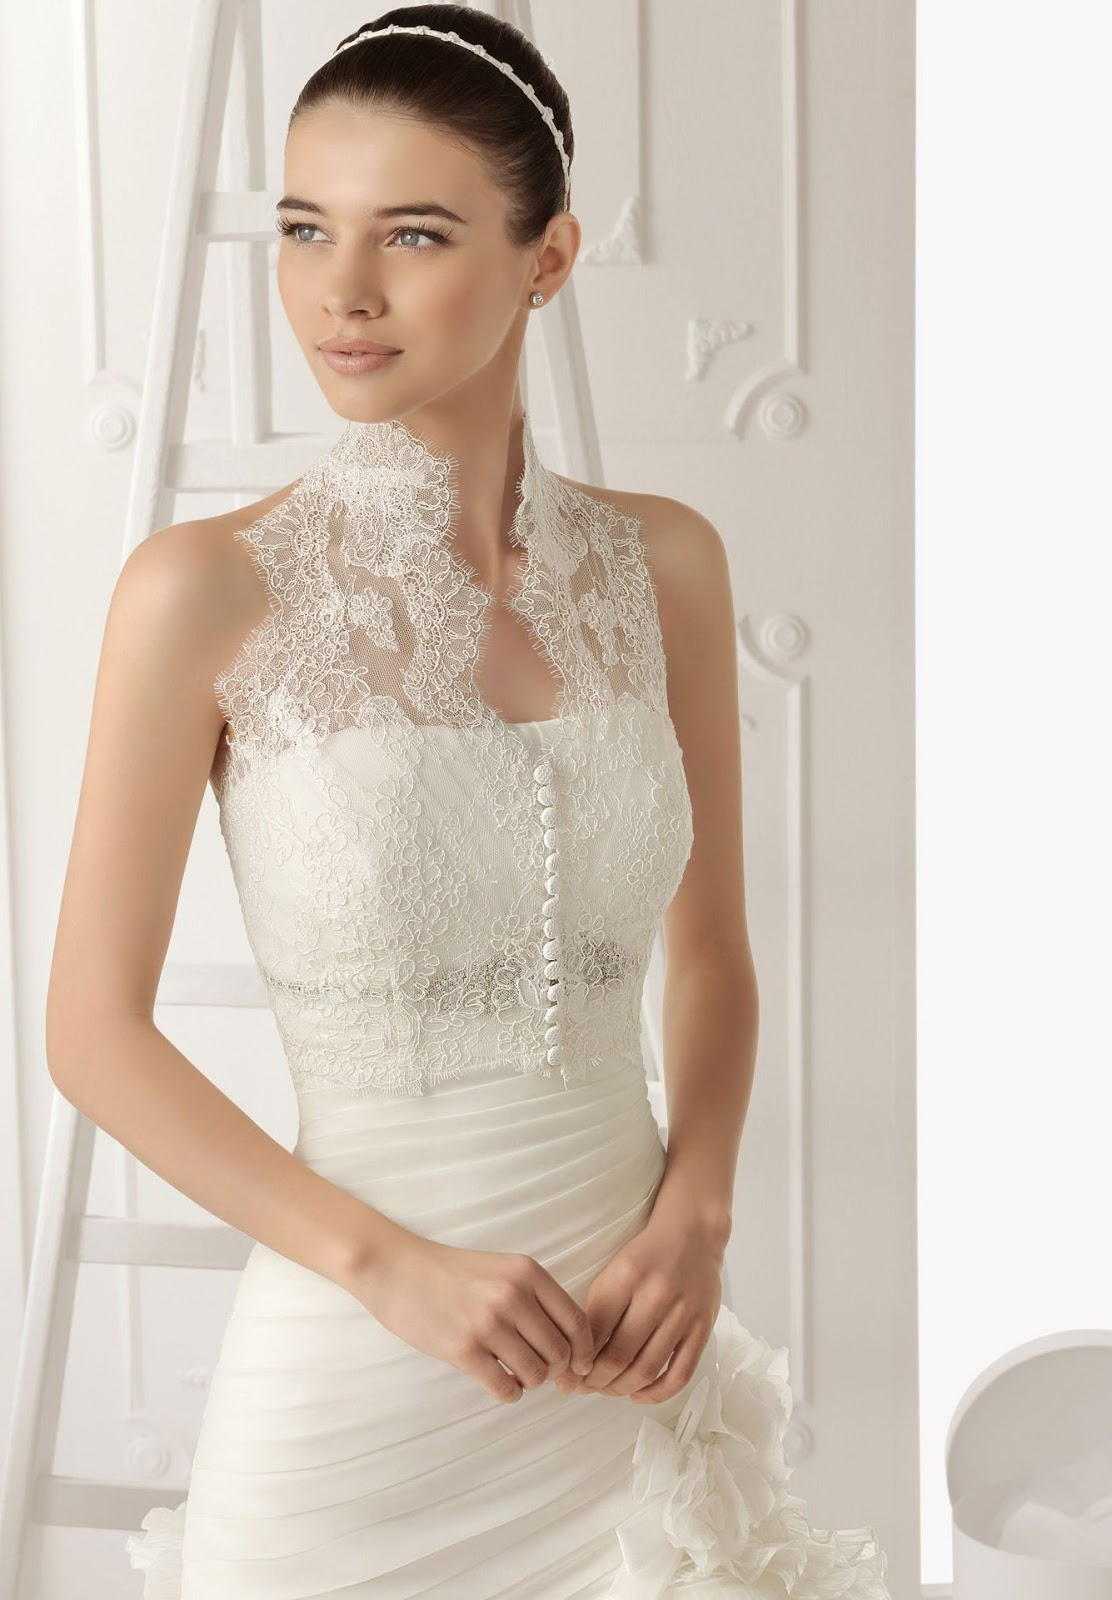 Elegant Wedding Dresses Images : Whiteazalea elegant dresses new arrival wedding with